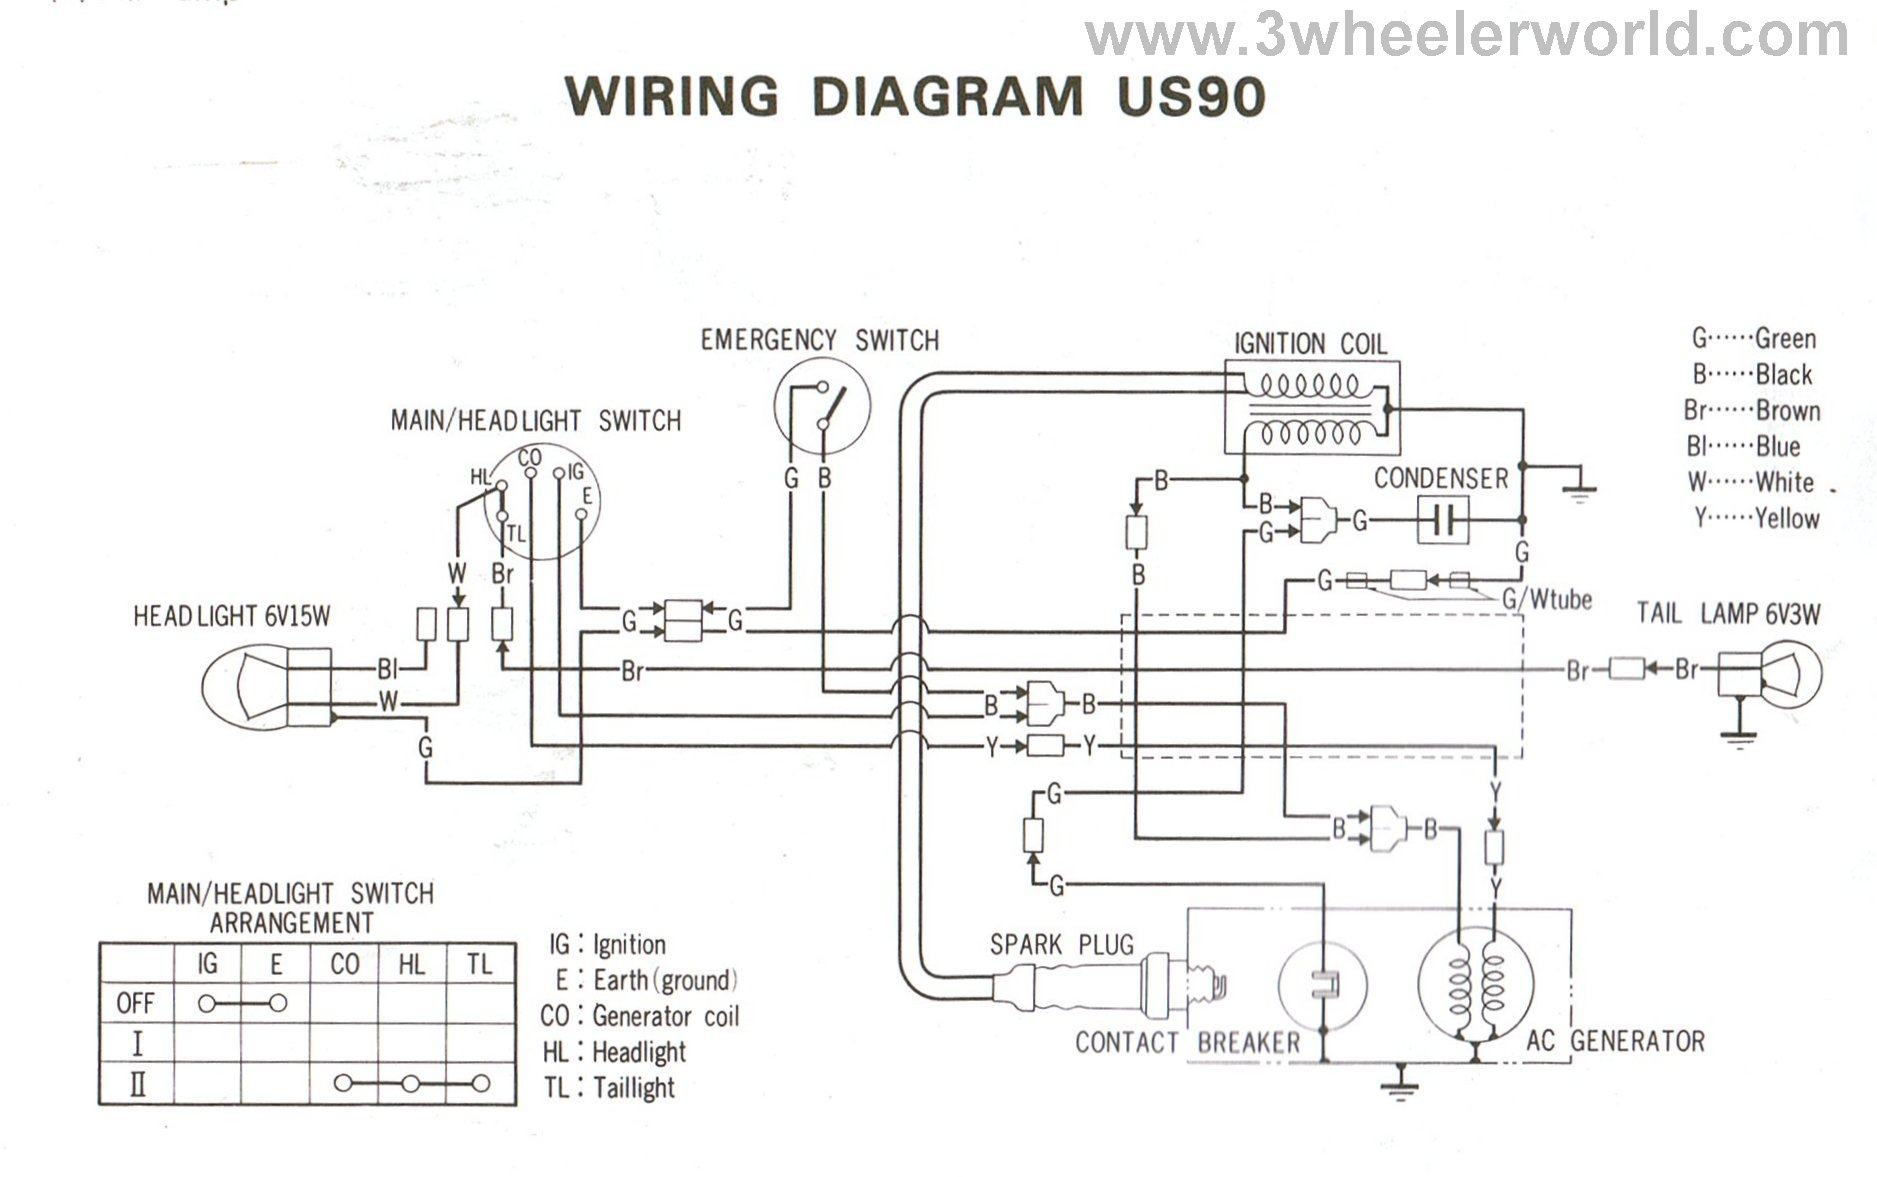 US90HM www 3wheelerworld com oldsite files wiring us90hm jpg polaris scrambler 90 wiring diagram at alyssarenee.co